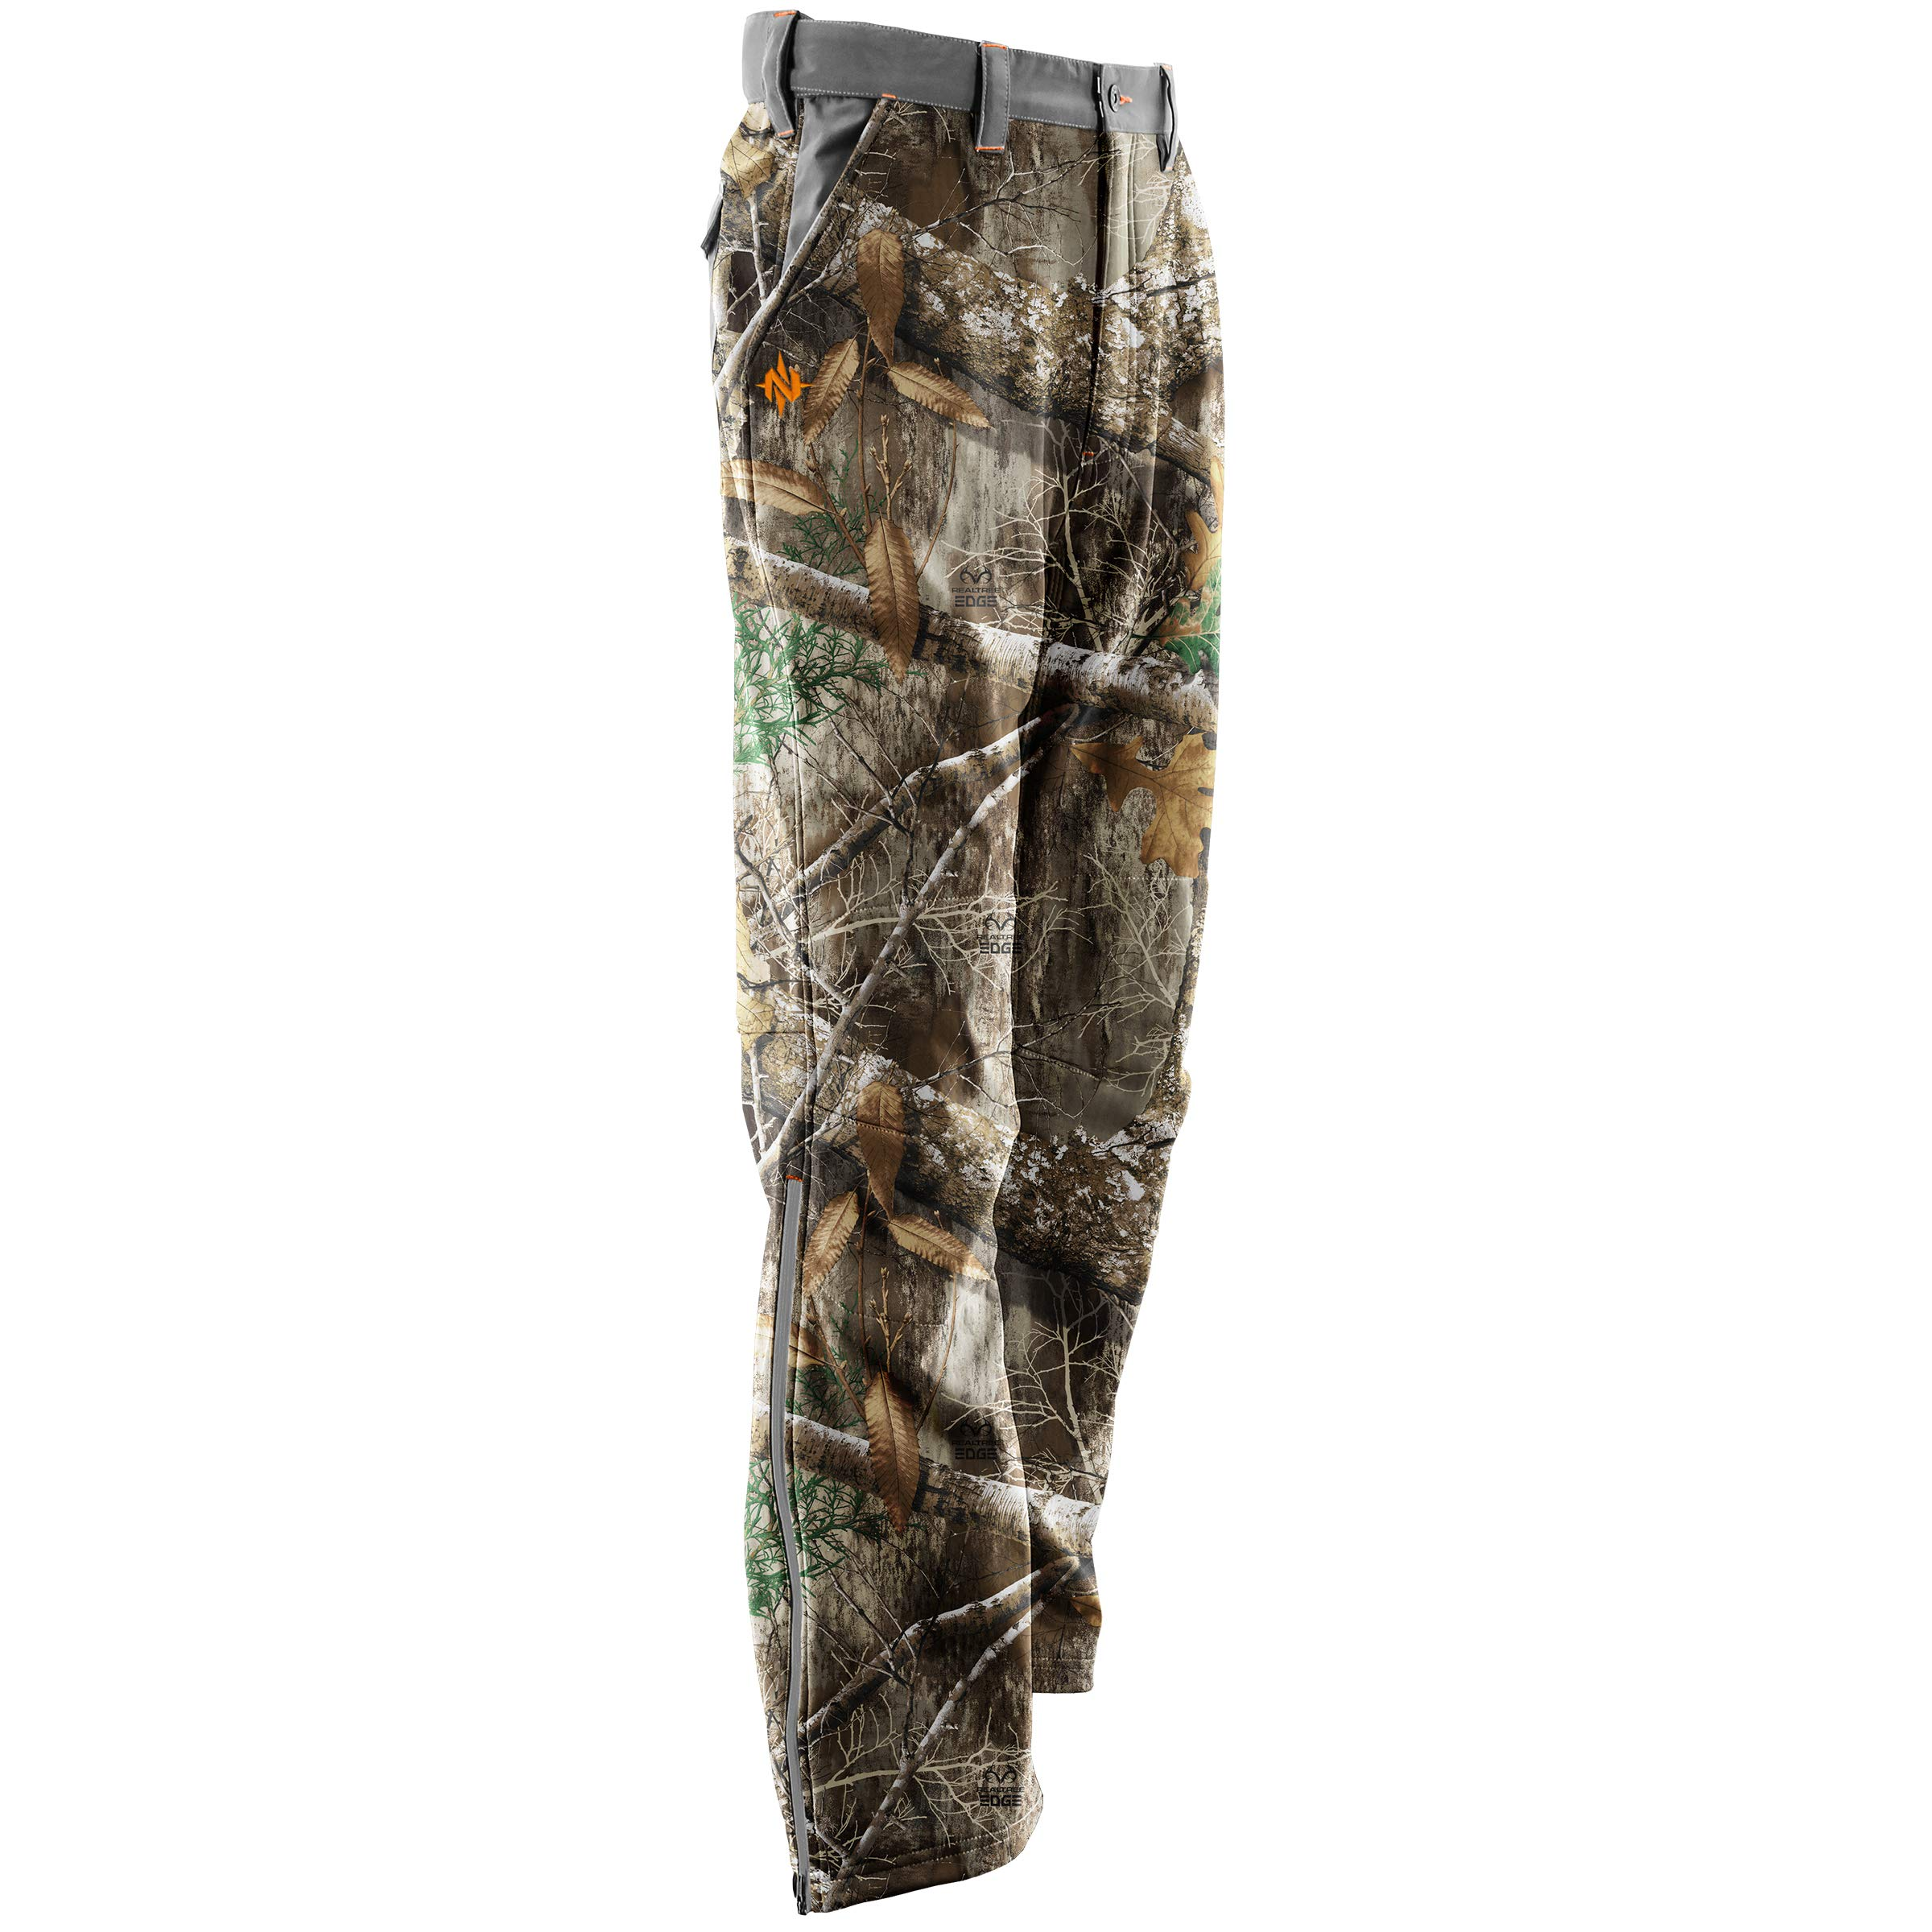 Nomad Harvester Pant (XXL/Realtree.Edge) N2000017-940-XXL by Nomad